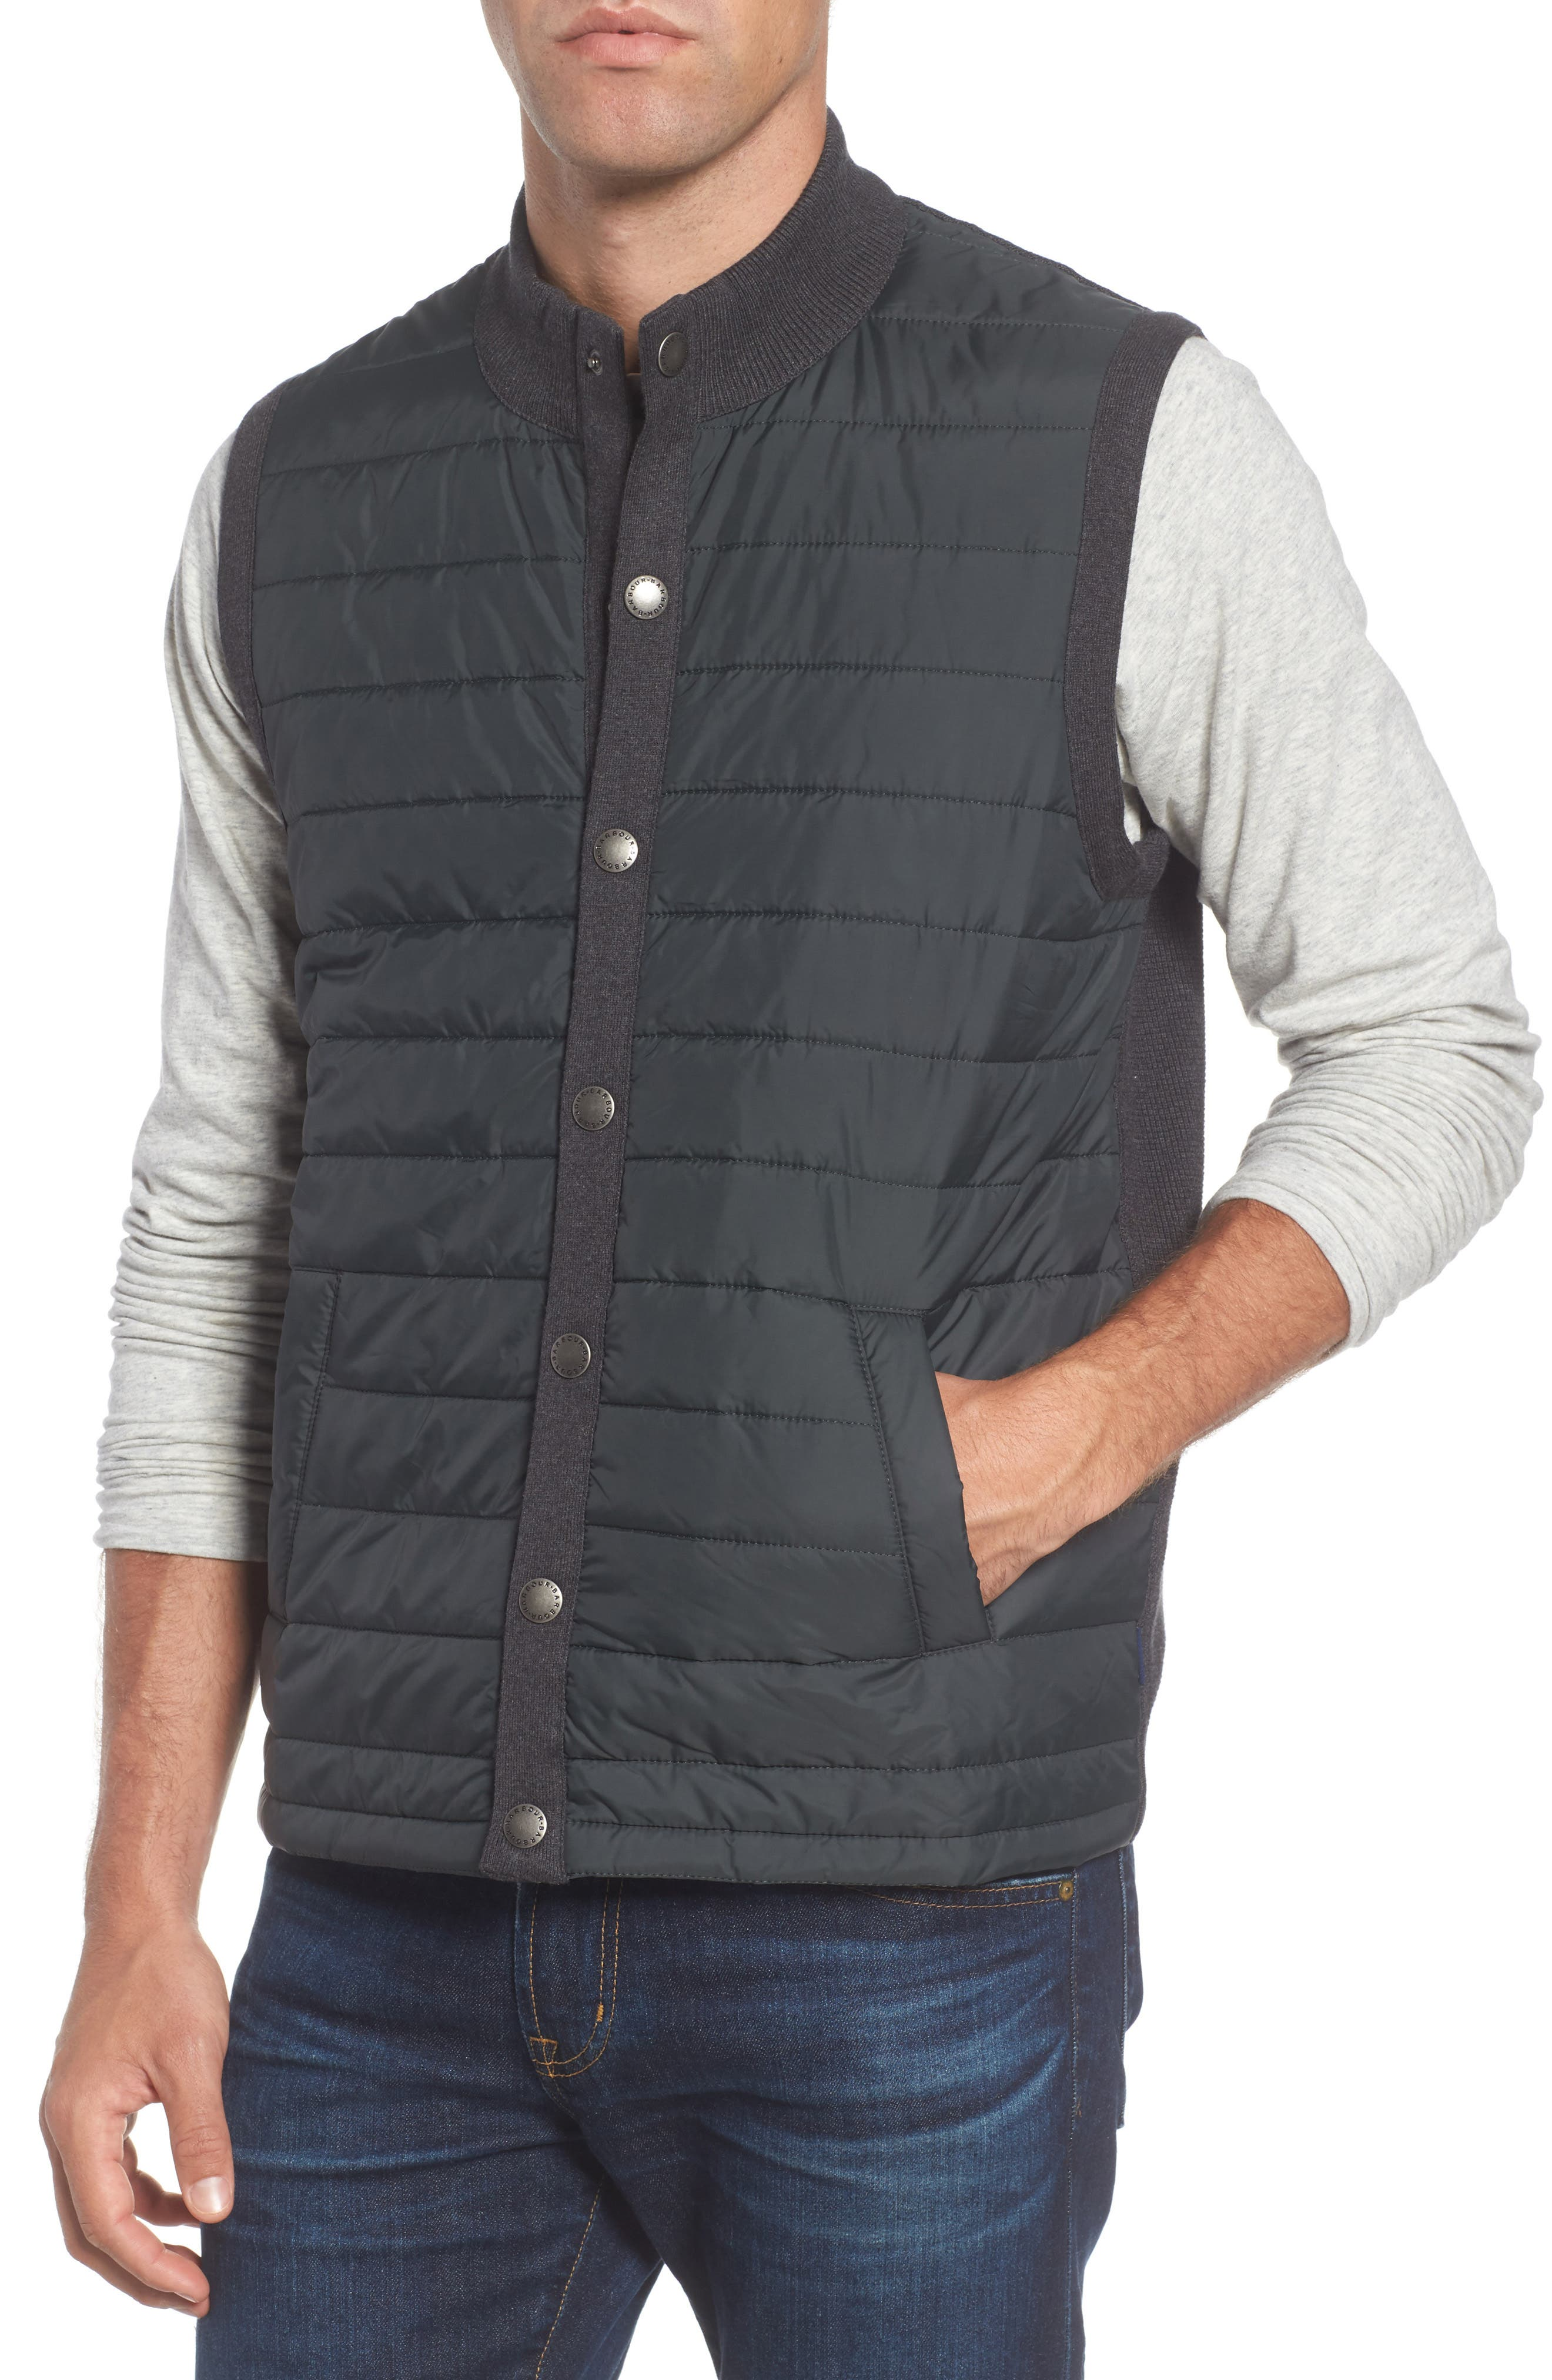 'Essential' Tailored Fit Mixed Media Vest,                             Alternate thumbnail 4, color,                             020